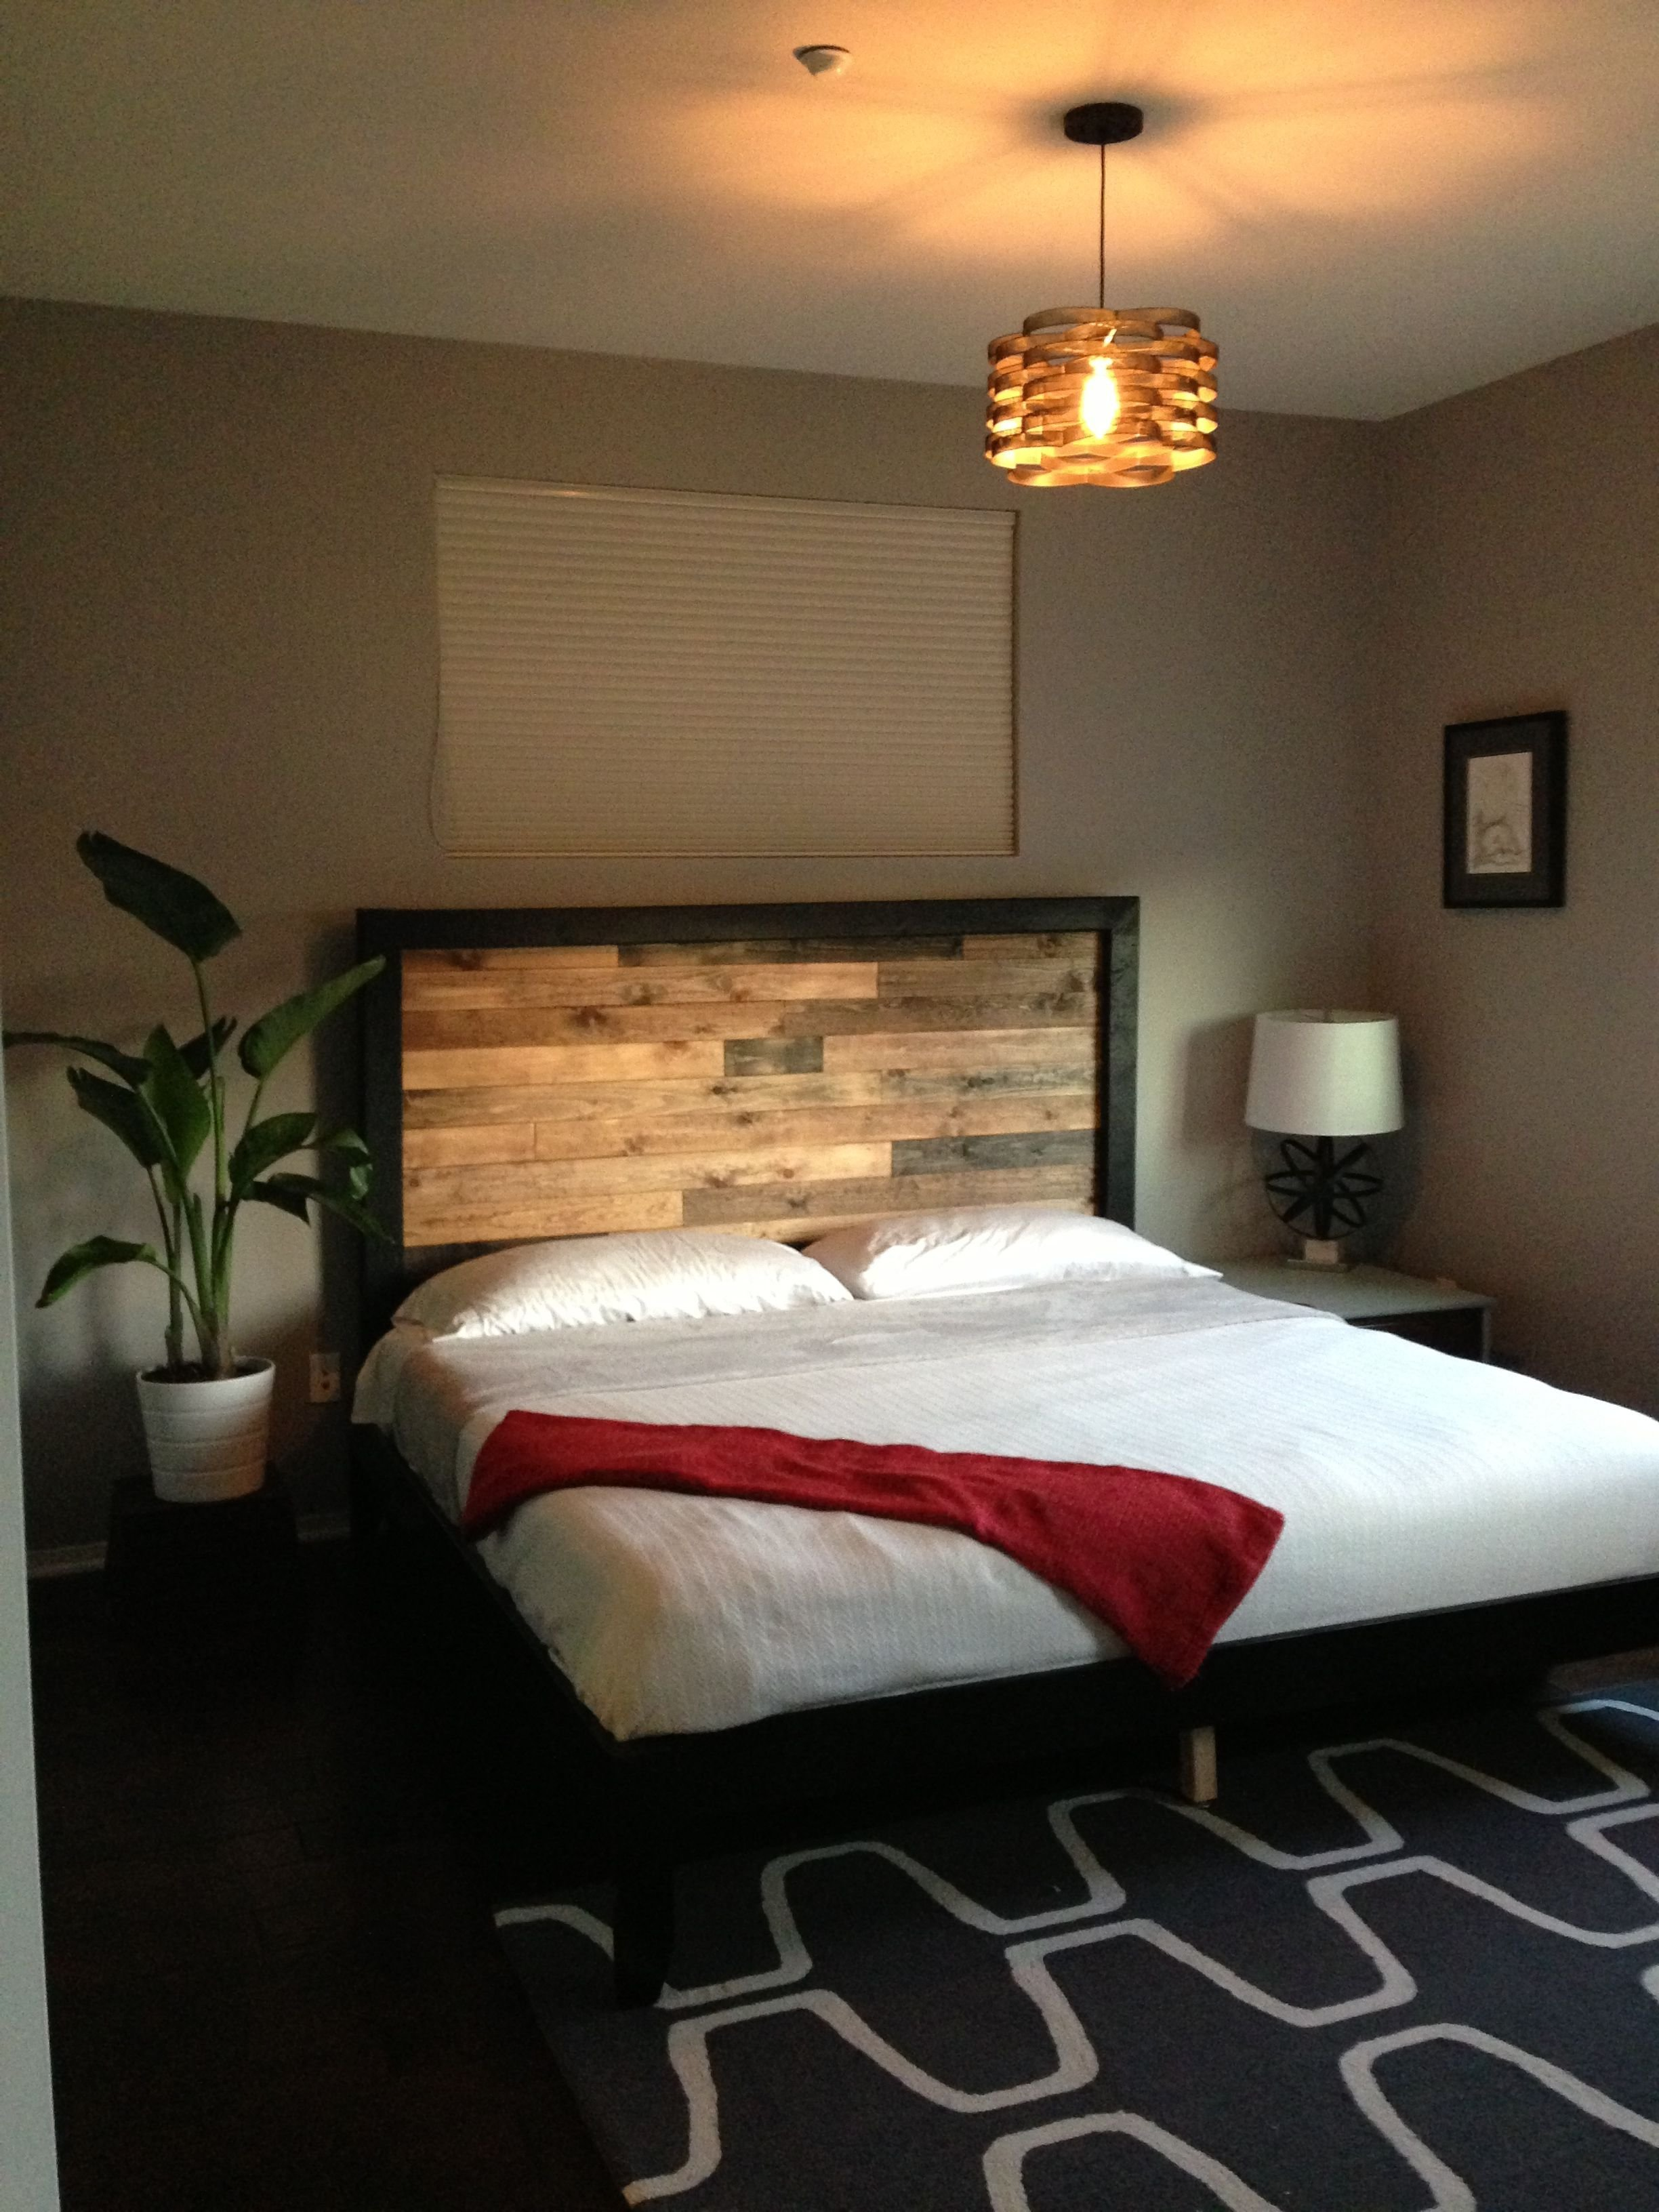 Best Master Bedroom For Single Male Client Www Style Bites Com With Pictures